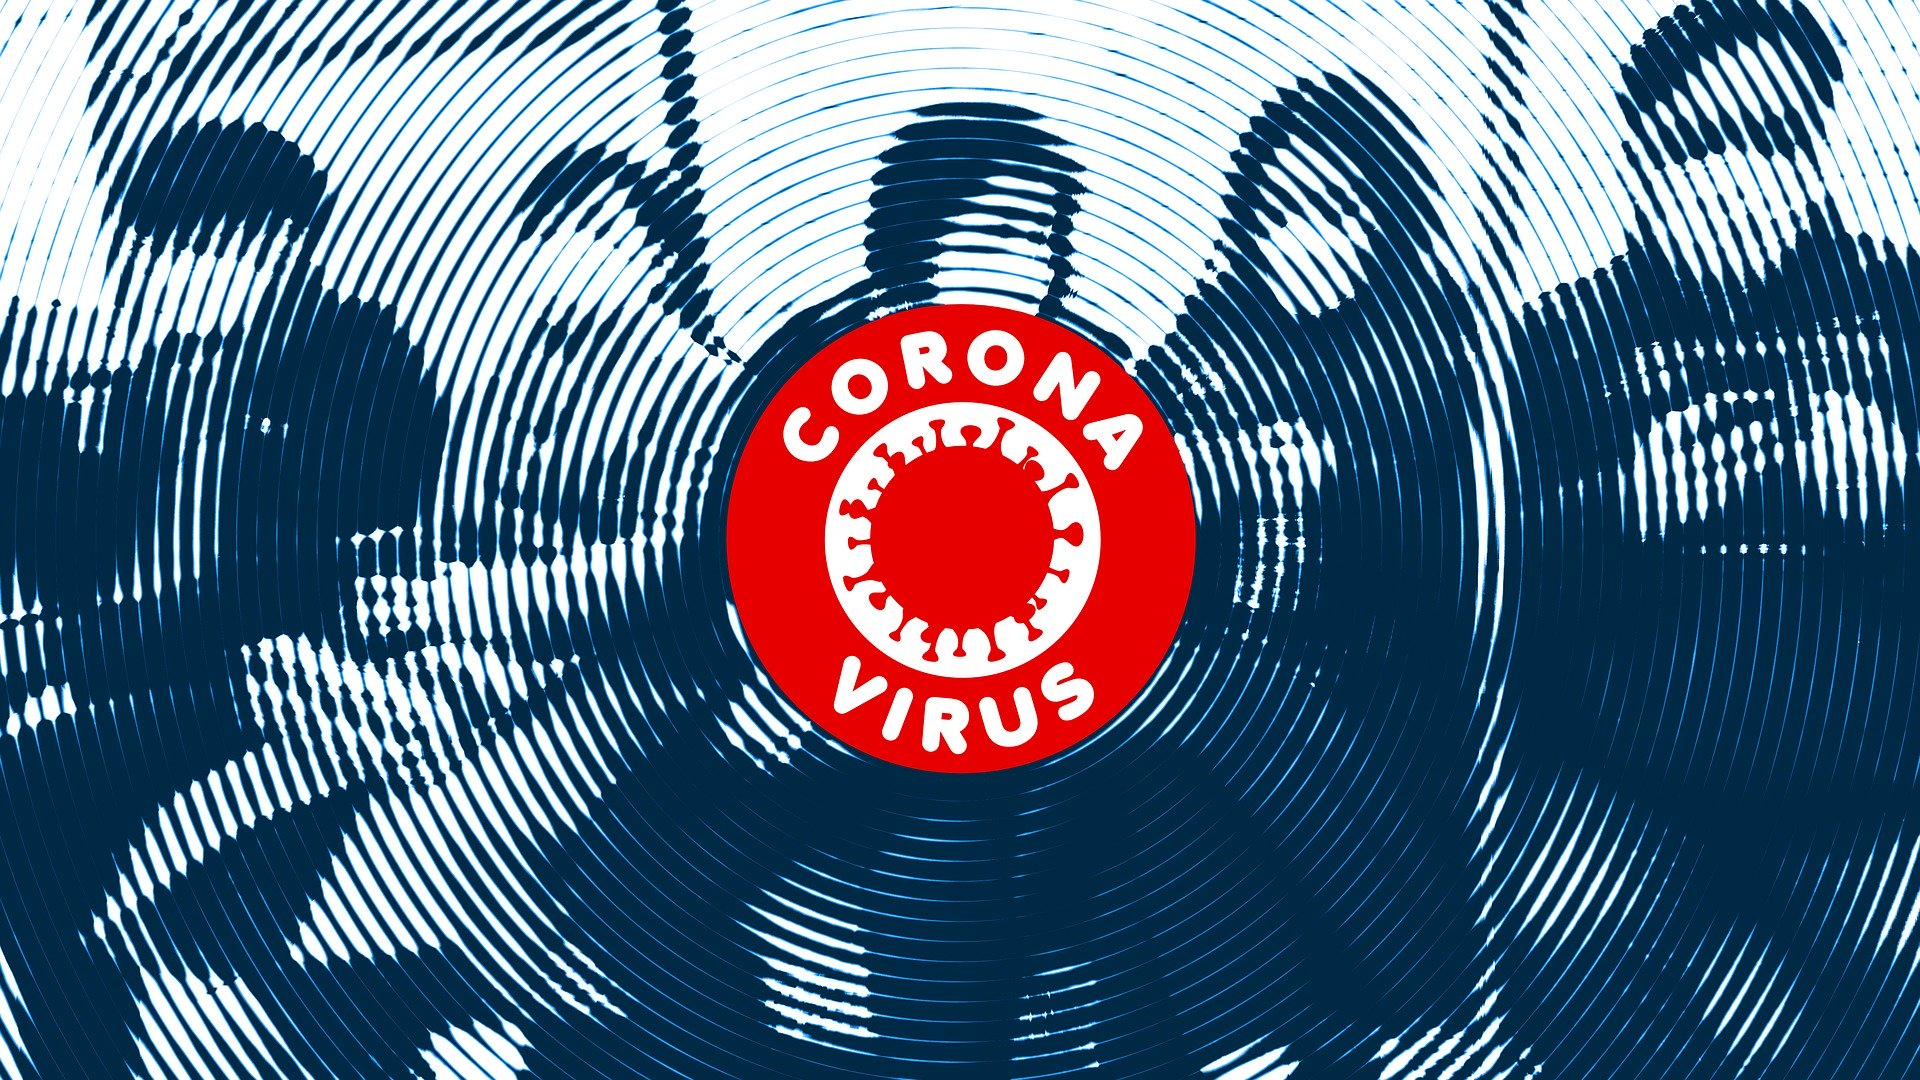 Coronavirus/ Covid19: What are the symptoms and when to see the doctor?